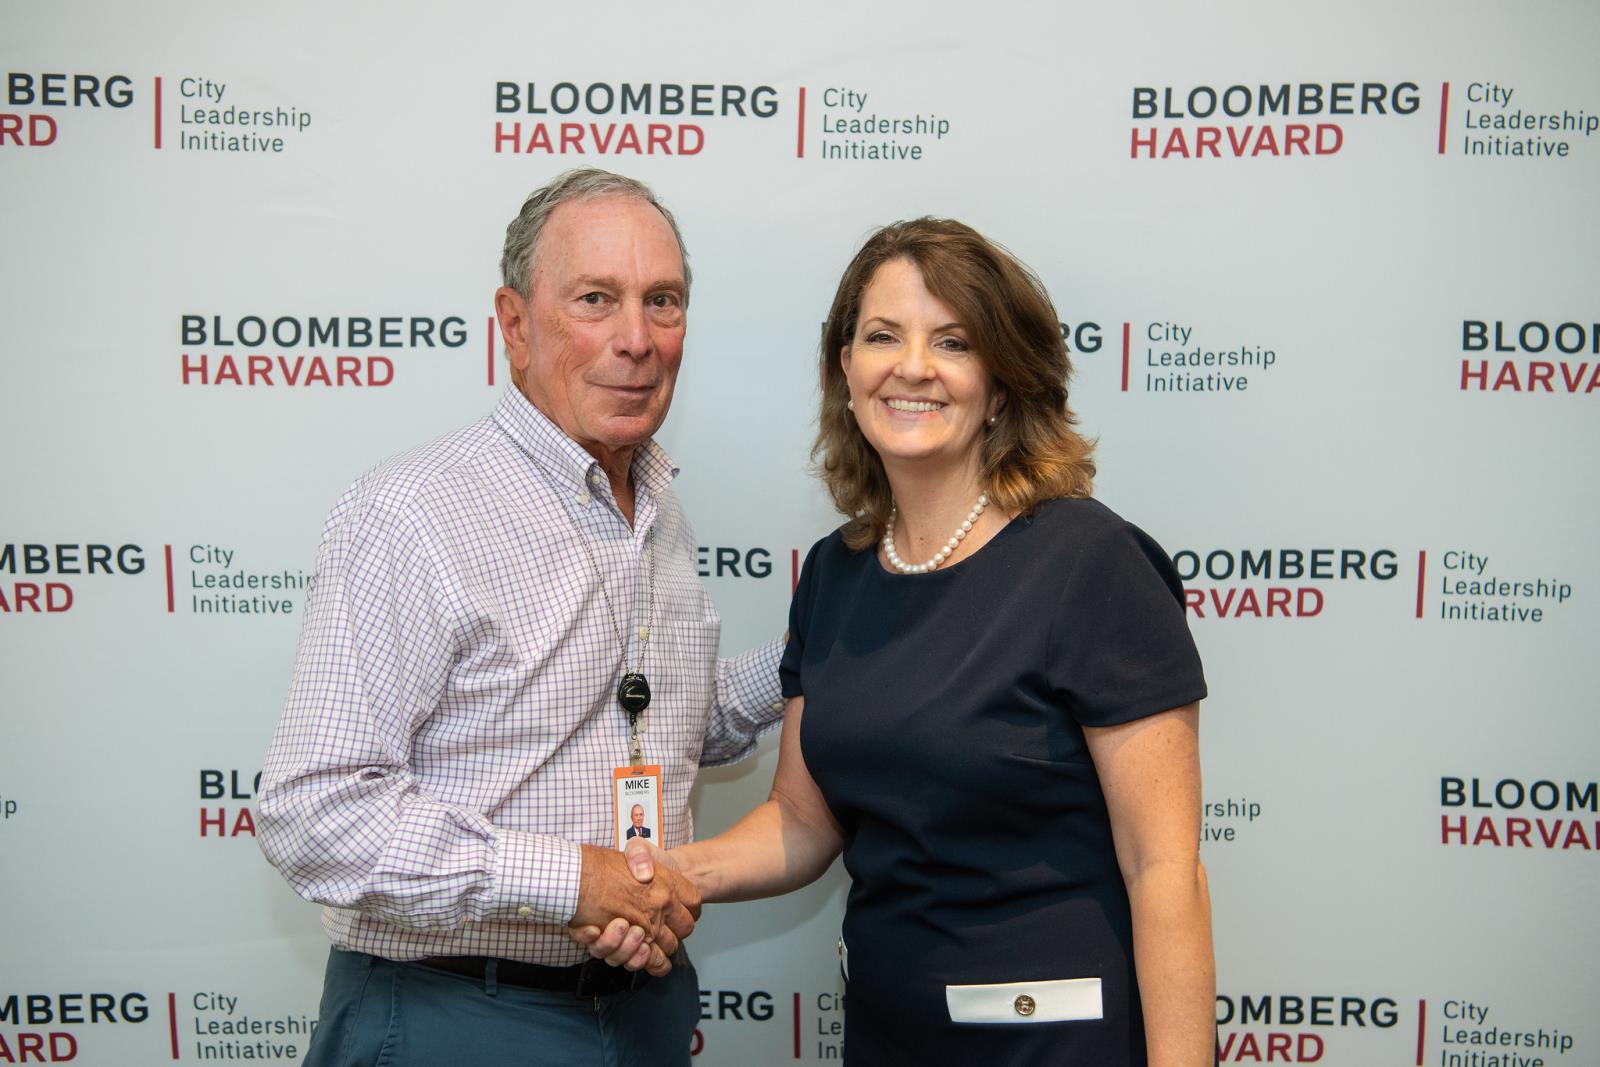 Bloomberg 3 Cindy